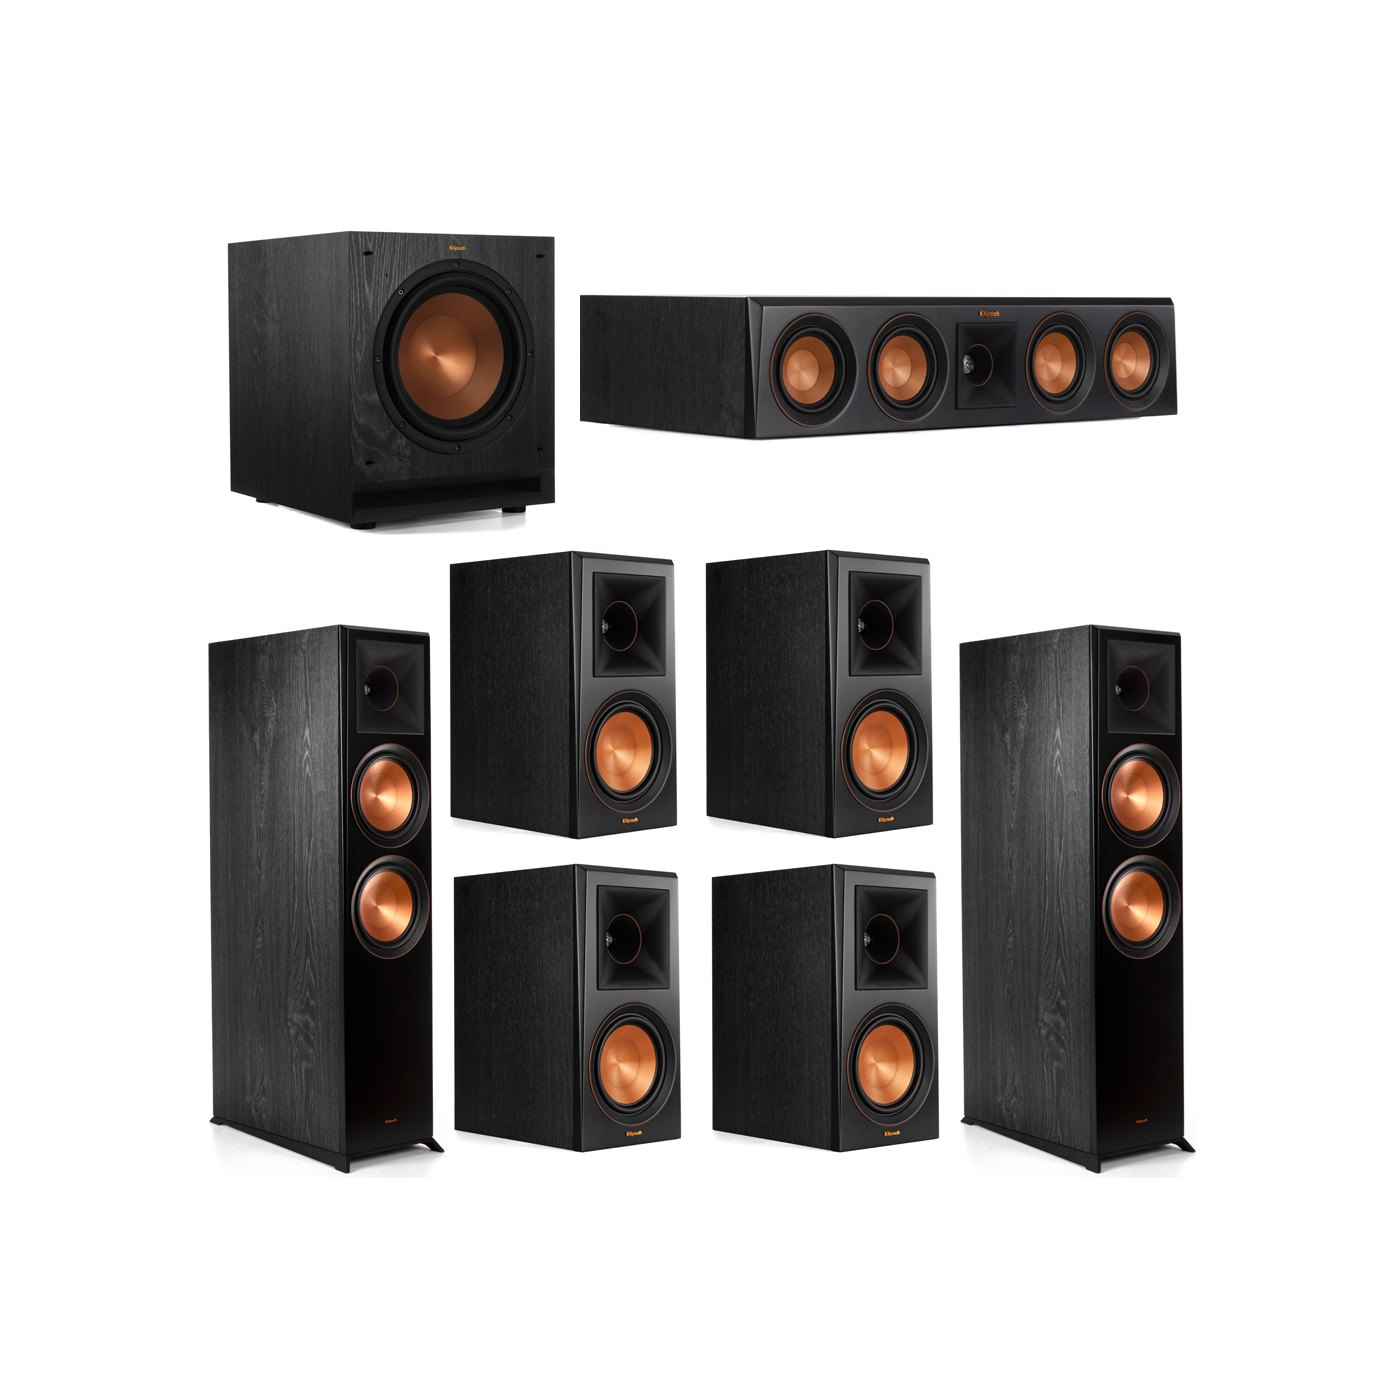 Klipsch 7.1 System with 2 RP-8000F Floorstanding Speakers, 1 Klipsch RP-404C Center Speaker, 4 Klipsch RP-600M Surround Speakers, 1 Klipsch SPL-100 Subwoofer